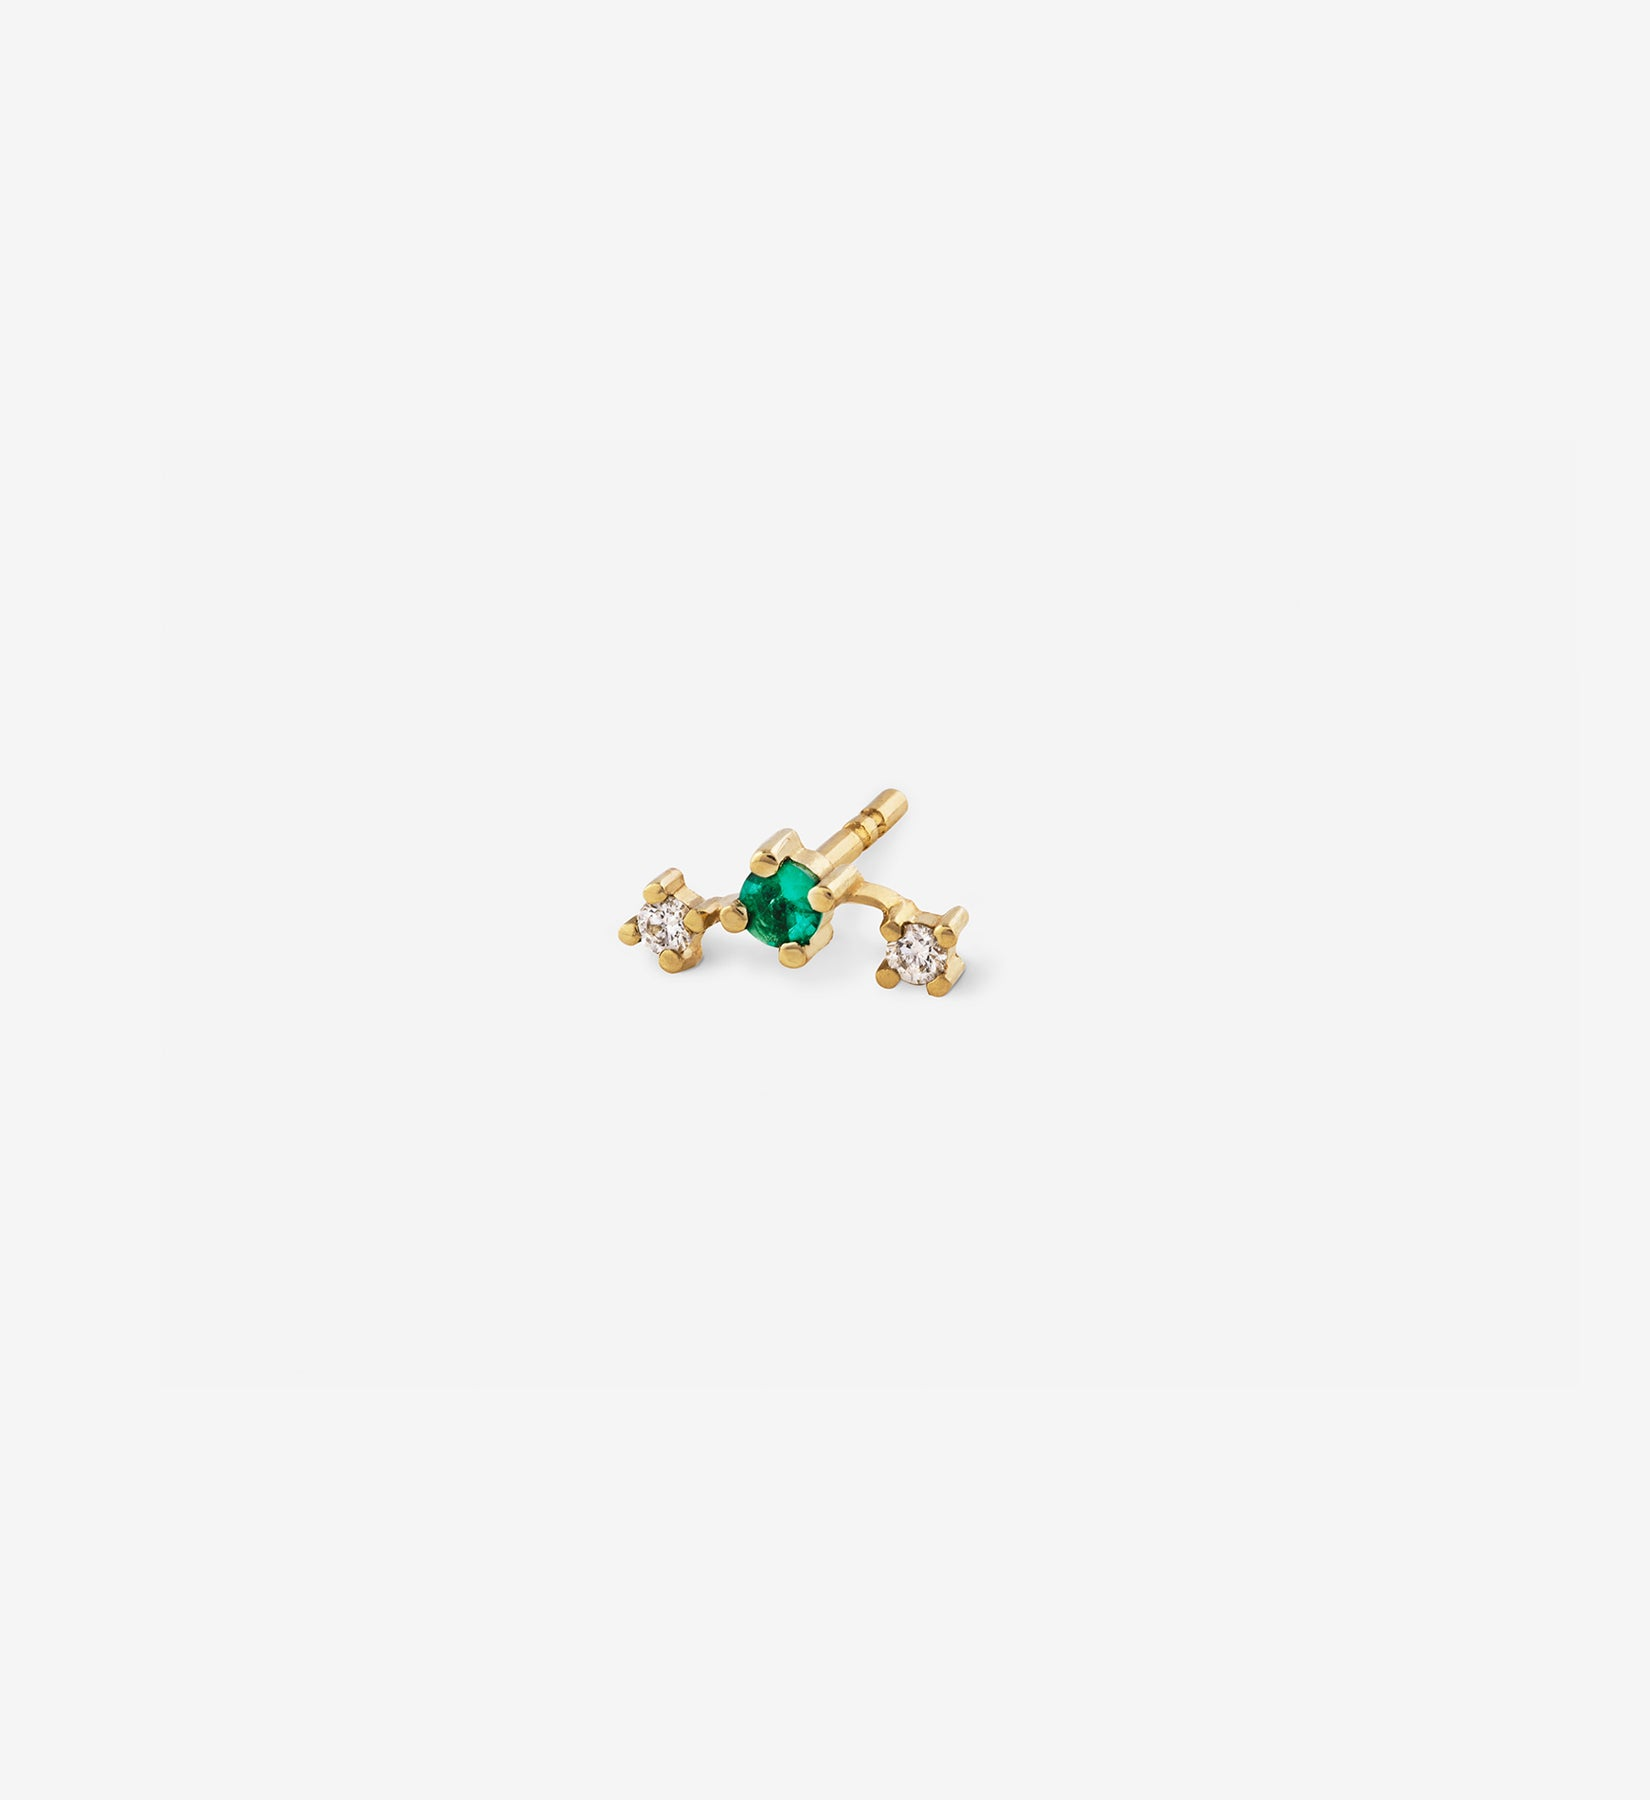 Double Diamond Emerald Stud 0.09 - Single